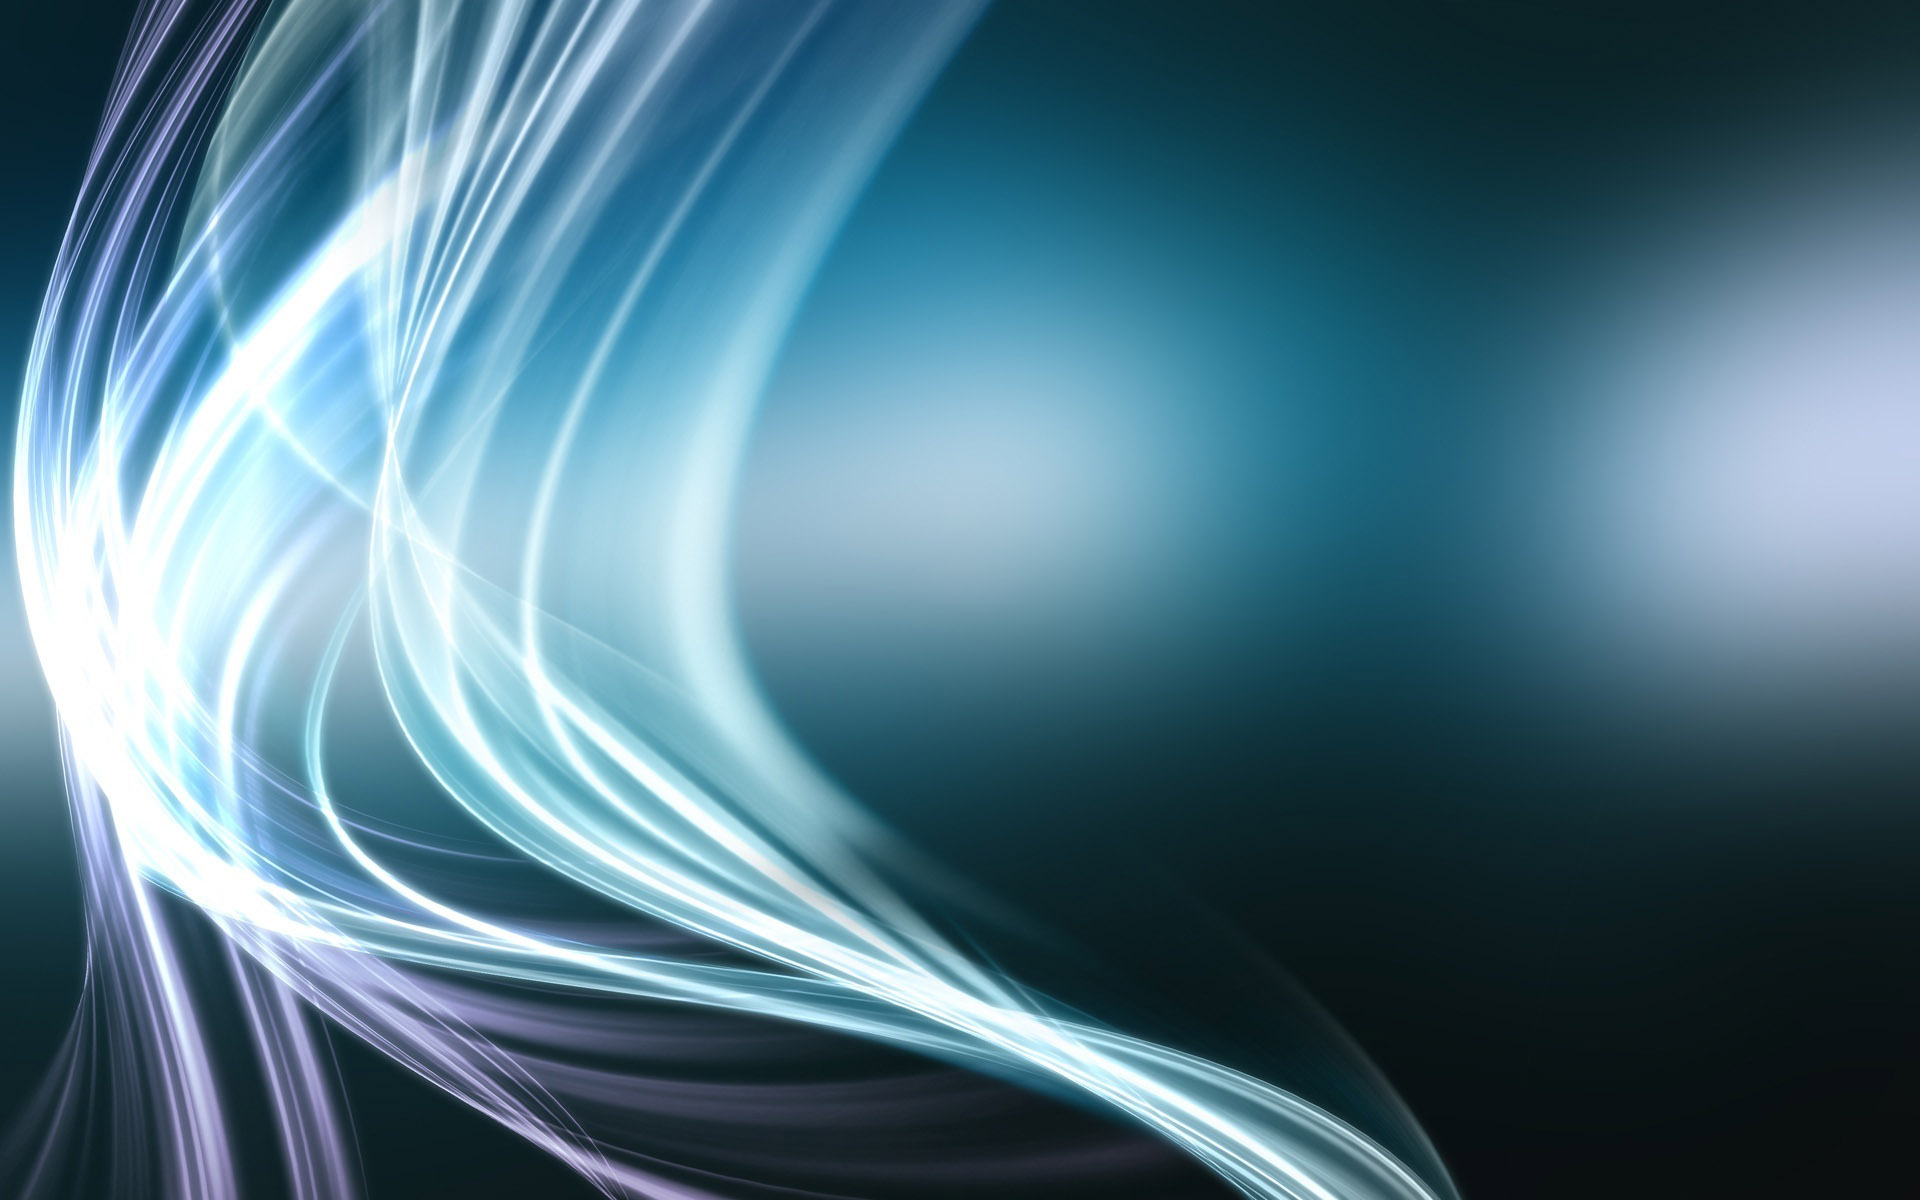 Glowing Blue Curves wallpaper